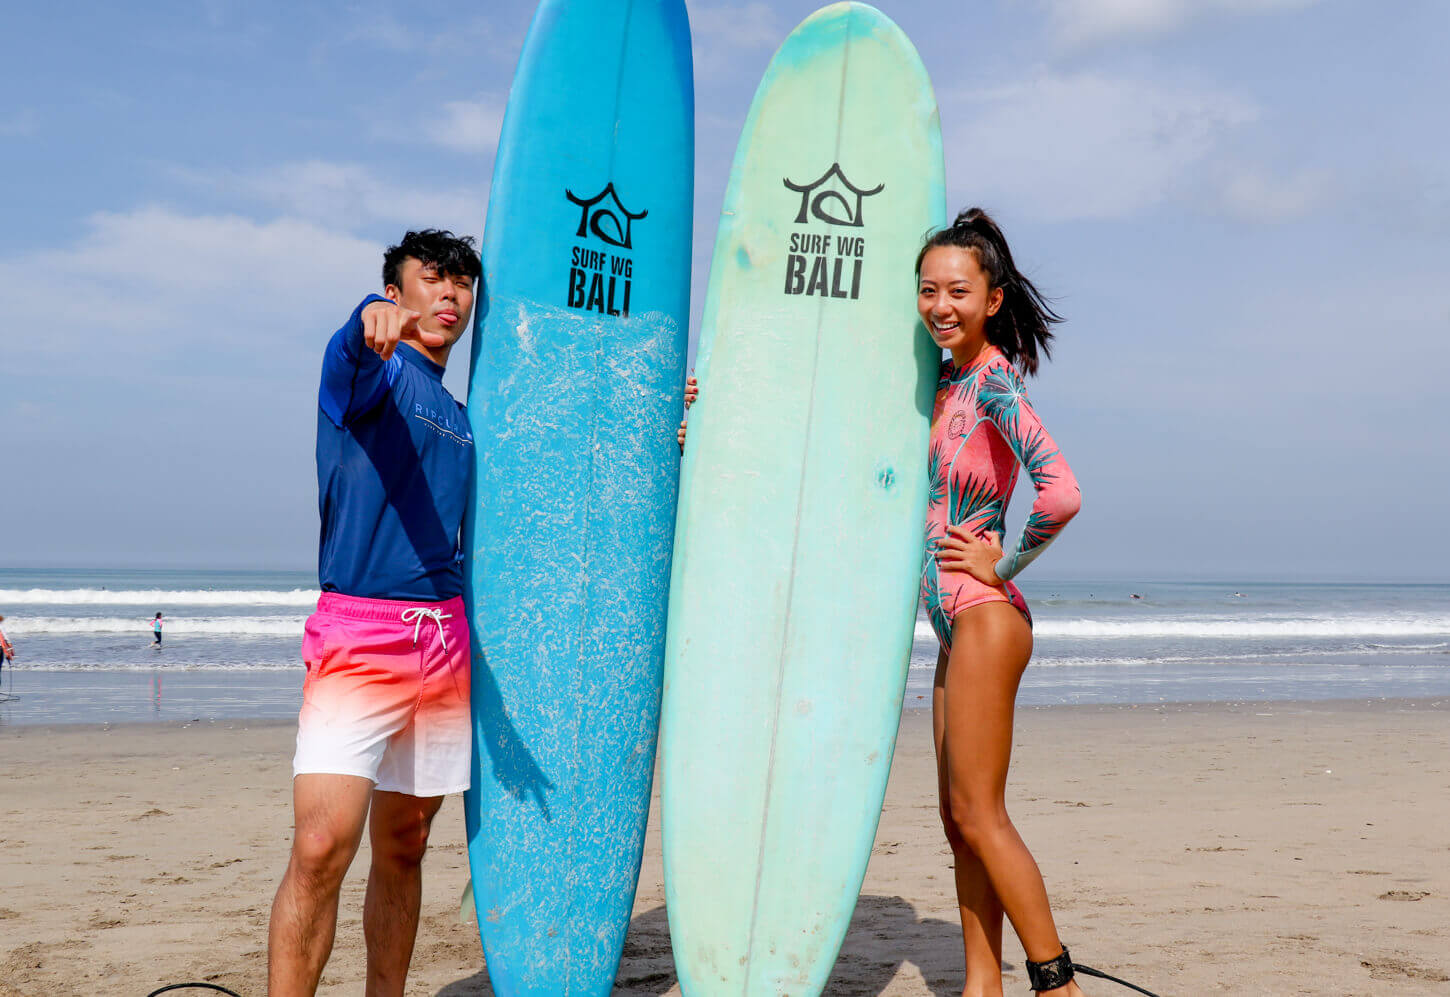 Learn to surf in Bali with uóur beginner class in Bali SurfWG